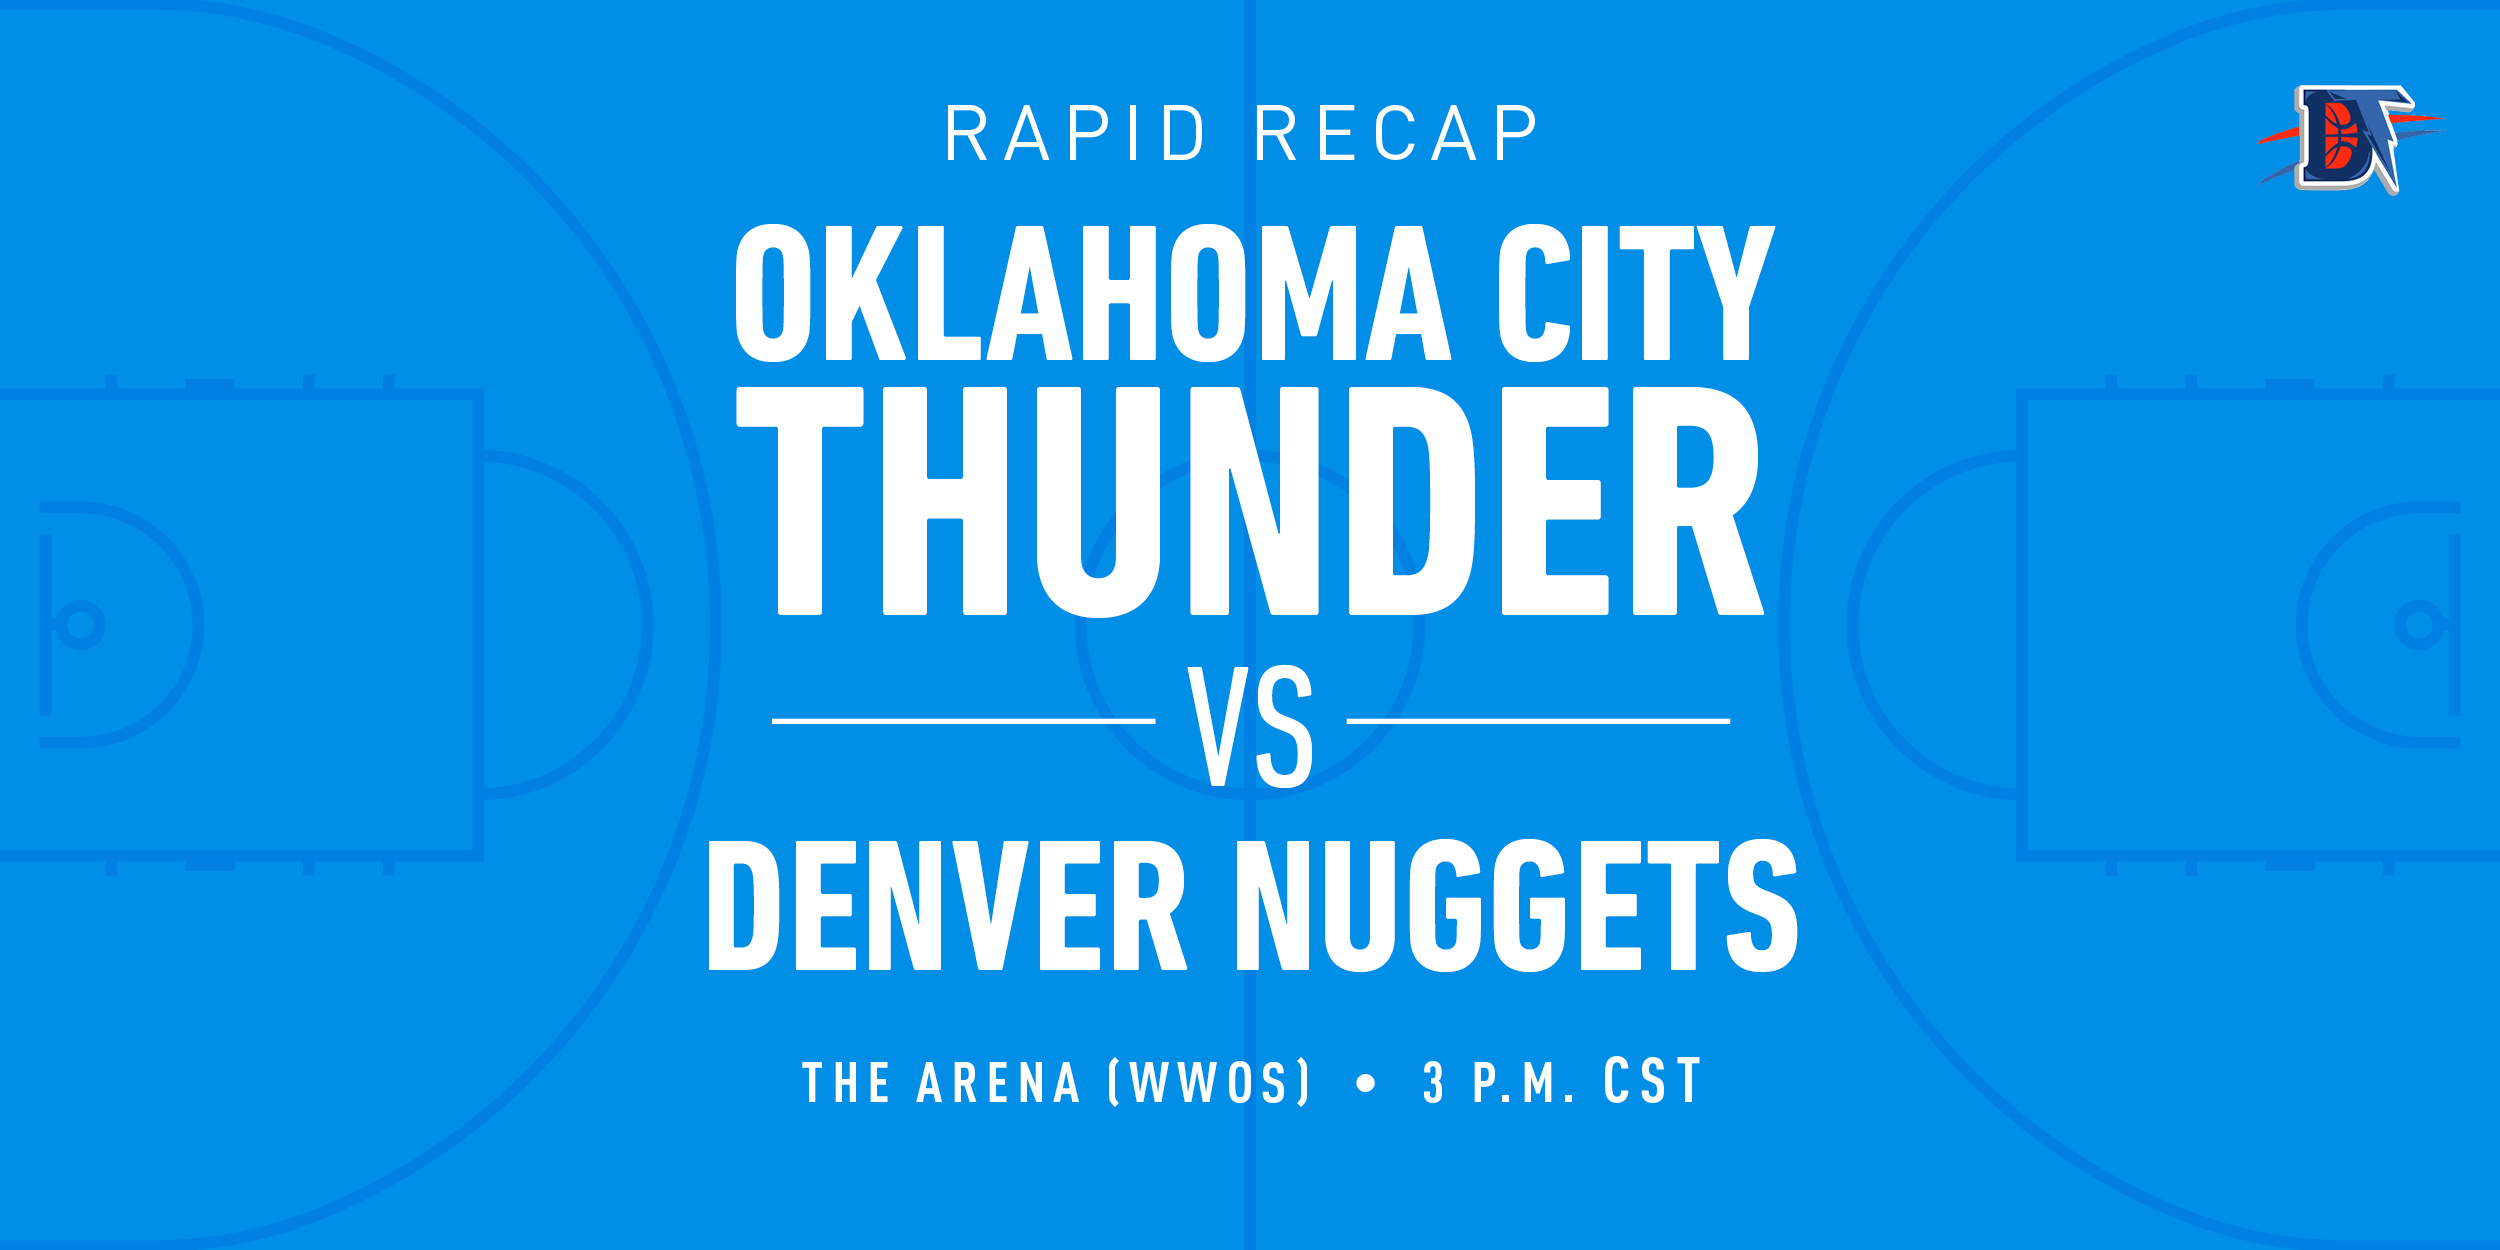 Game 66 Rapid Recap: Nuggets (44-23) def. Thunder (41-25) 121-113